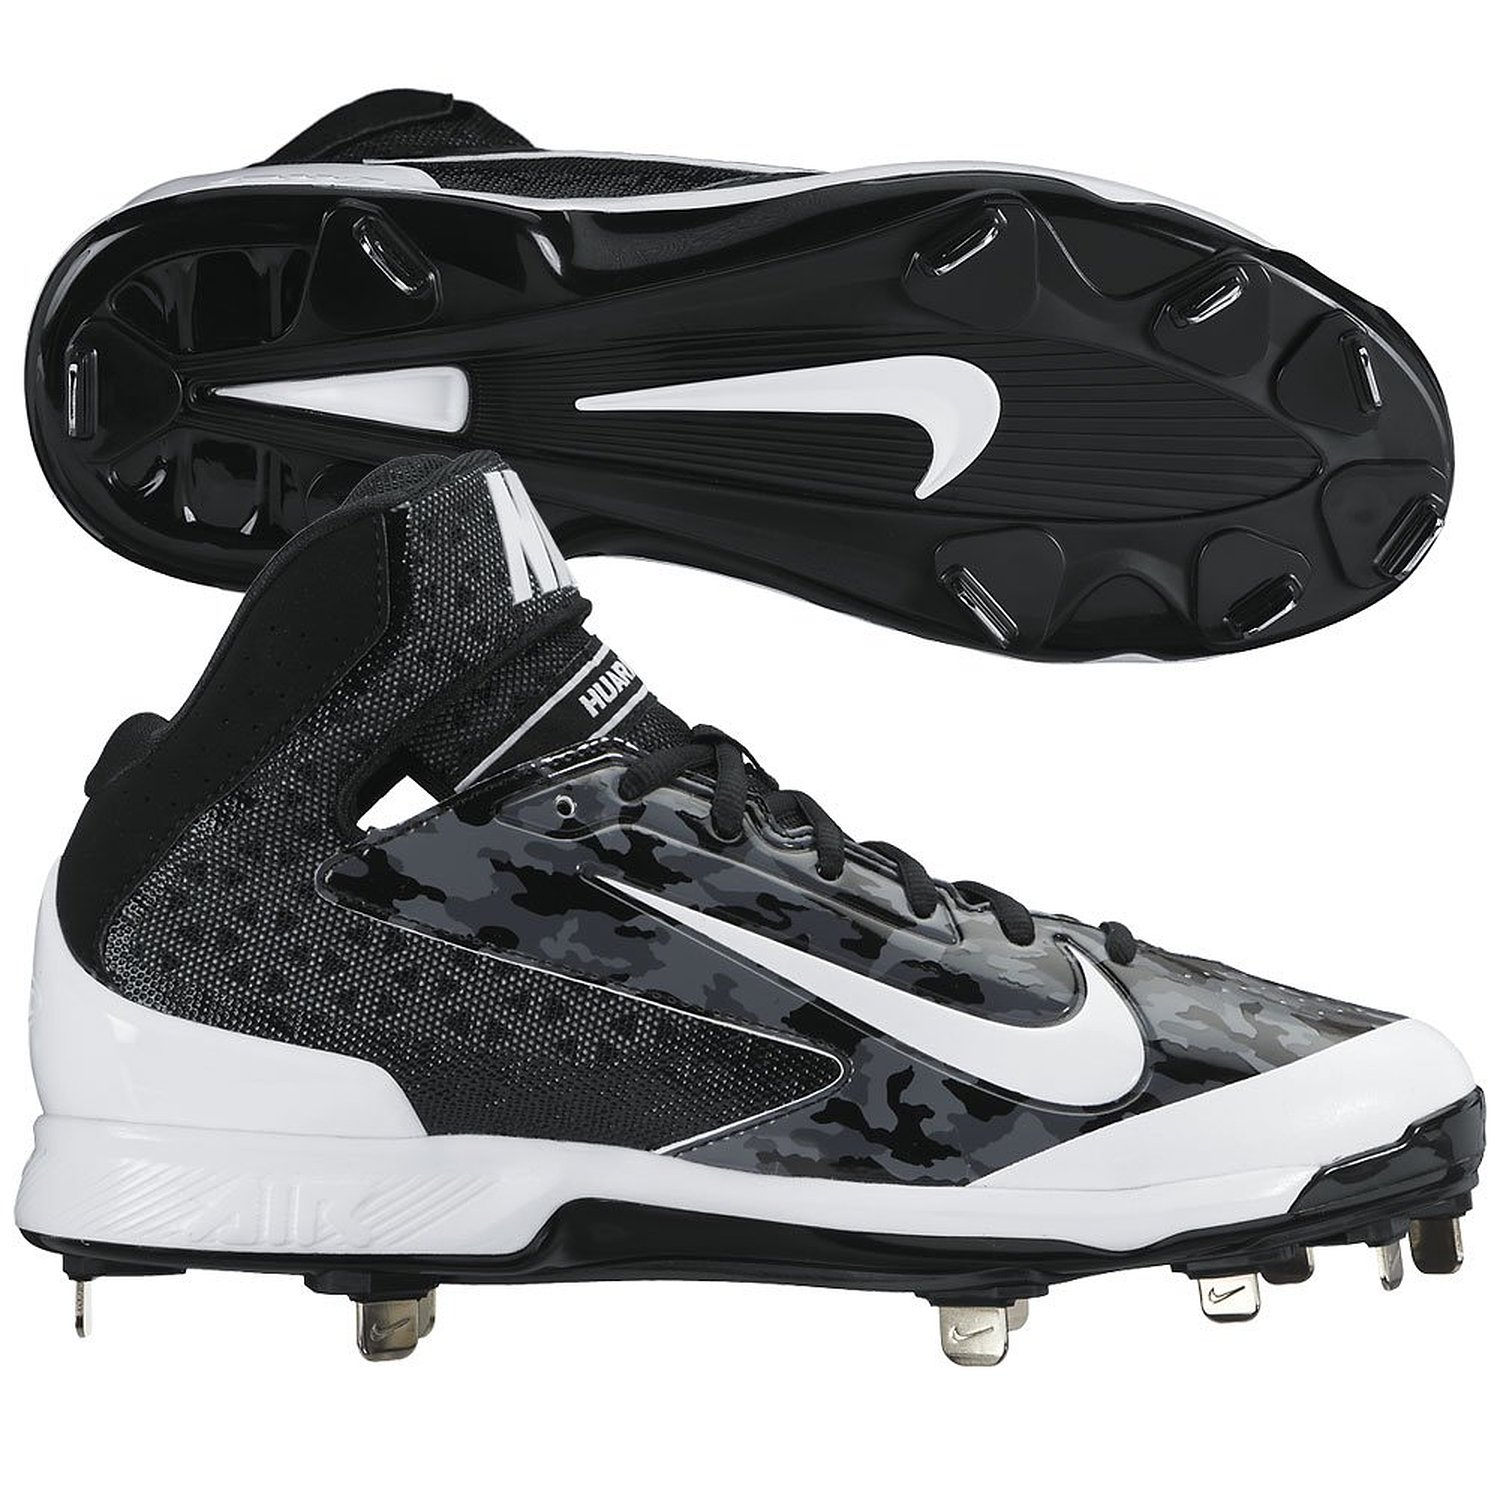 0dd8c4ce8ccb Get Quotations · Nike Mens Camo Air Huarache Pro MId Camo Metal Cleats 11  1 2 US Black